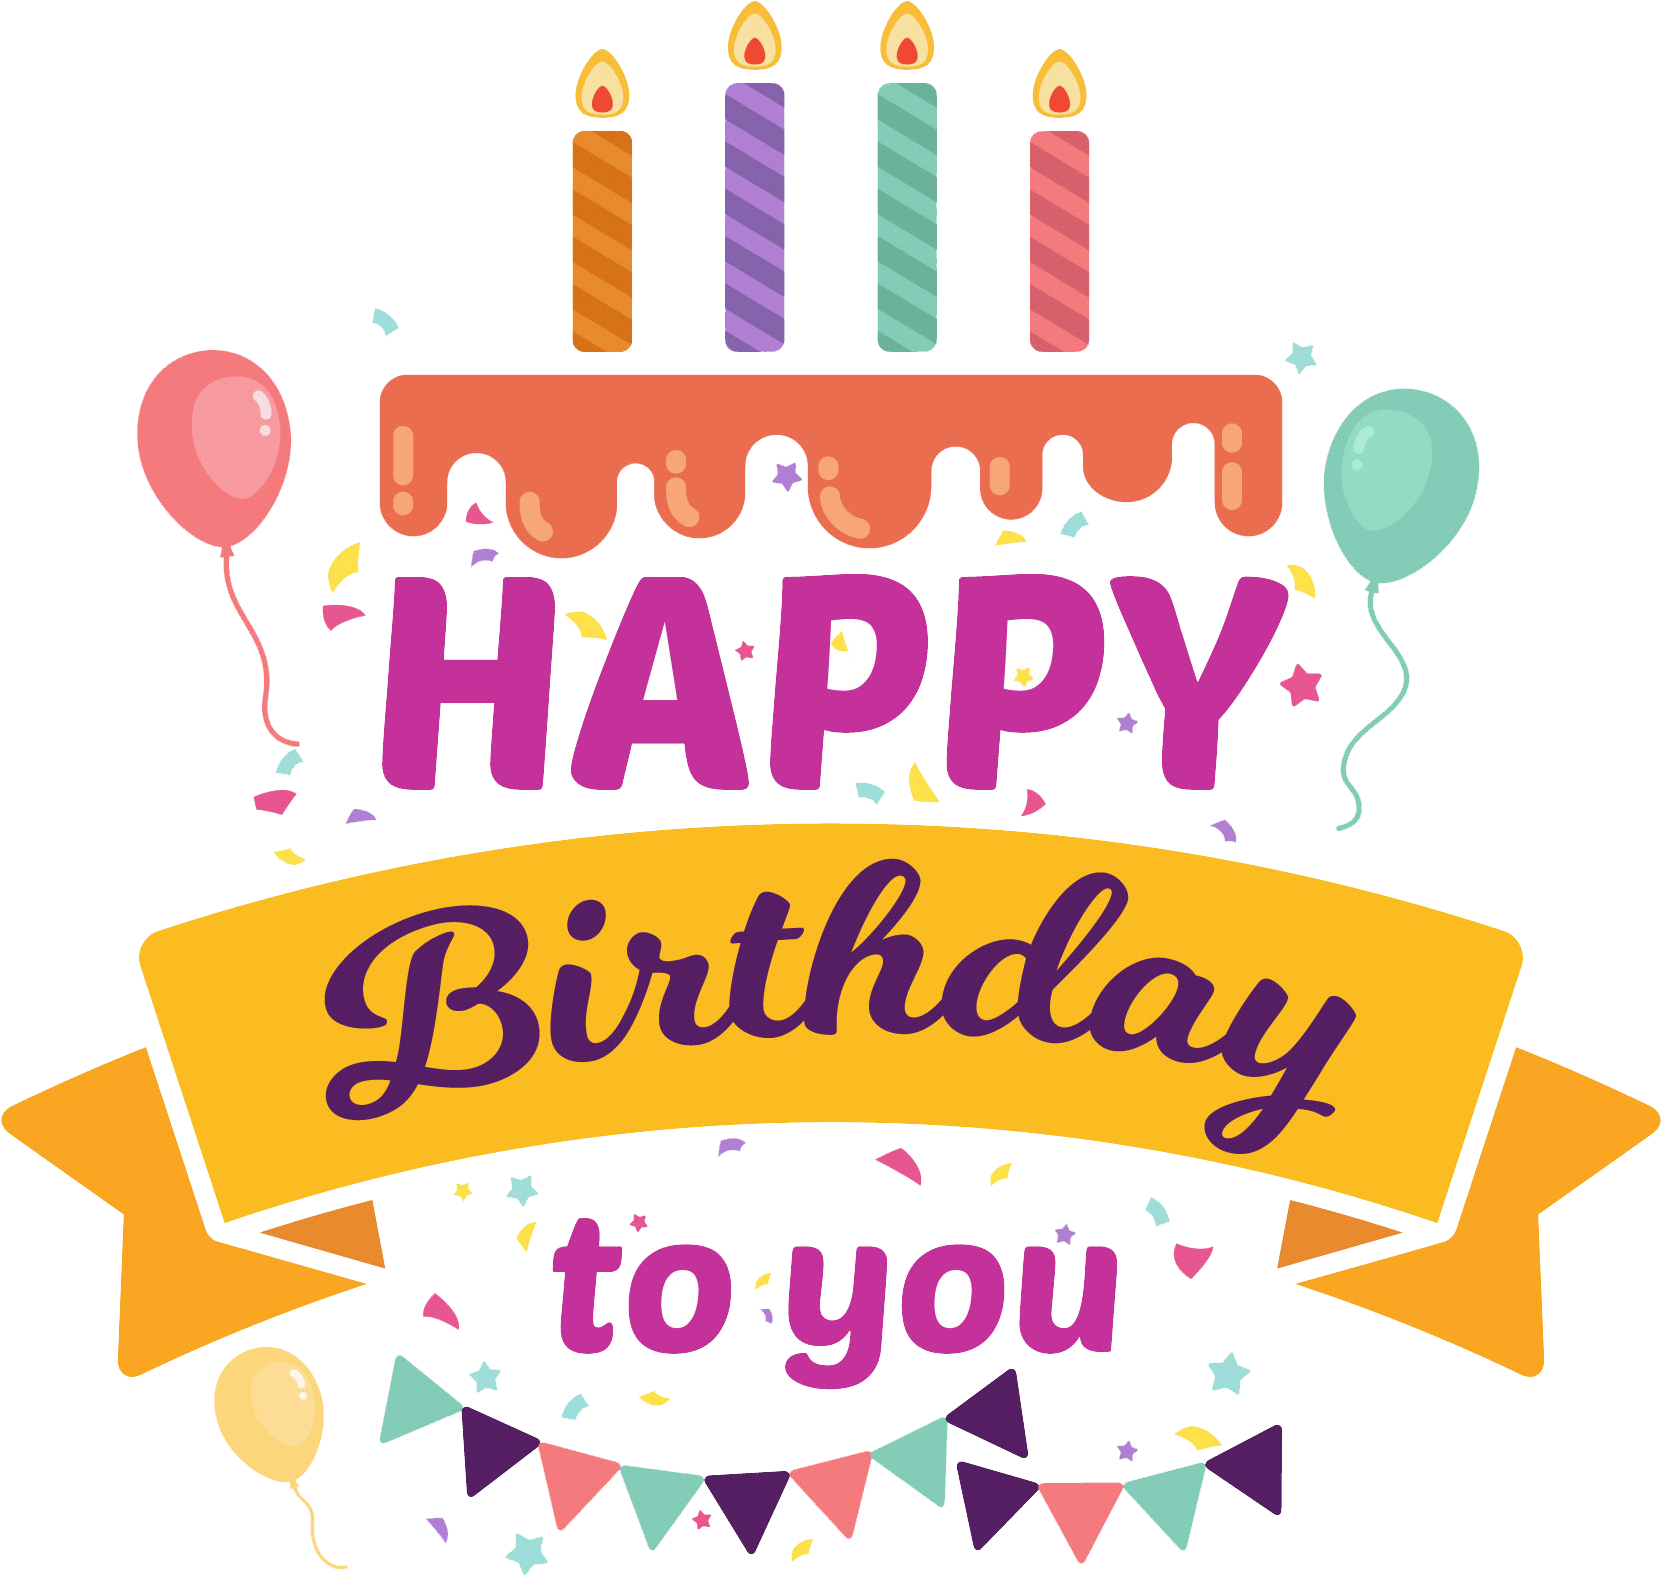 Birthday candles png happy birthday sticker design 1024x1024 png download